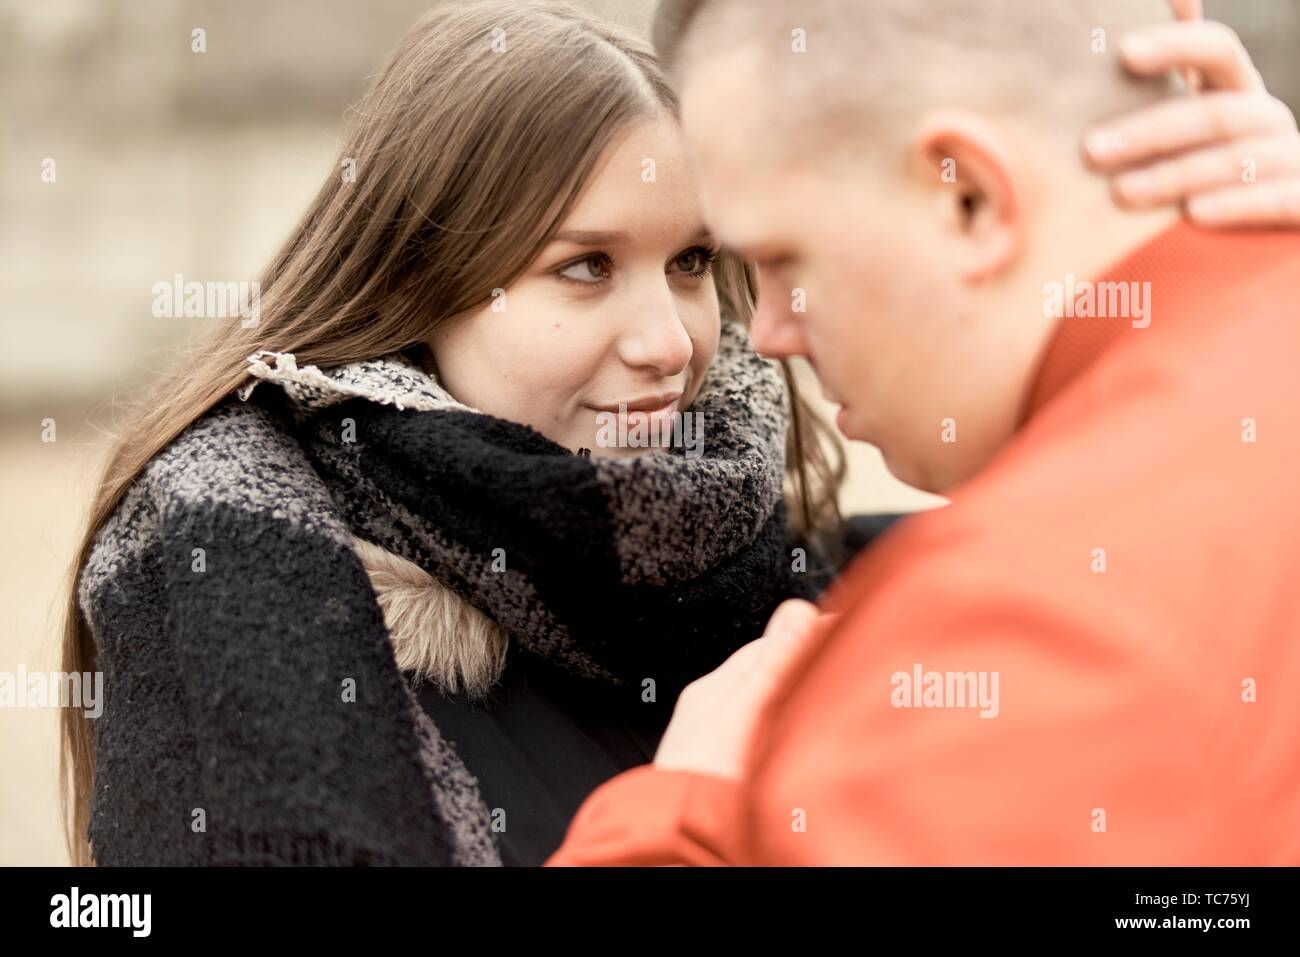 couple looking at each other, outdoors in Cottbus, Brandenburg, Germany - Stock Image